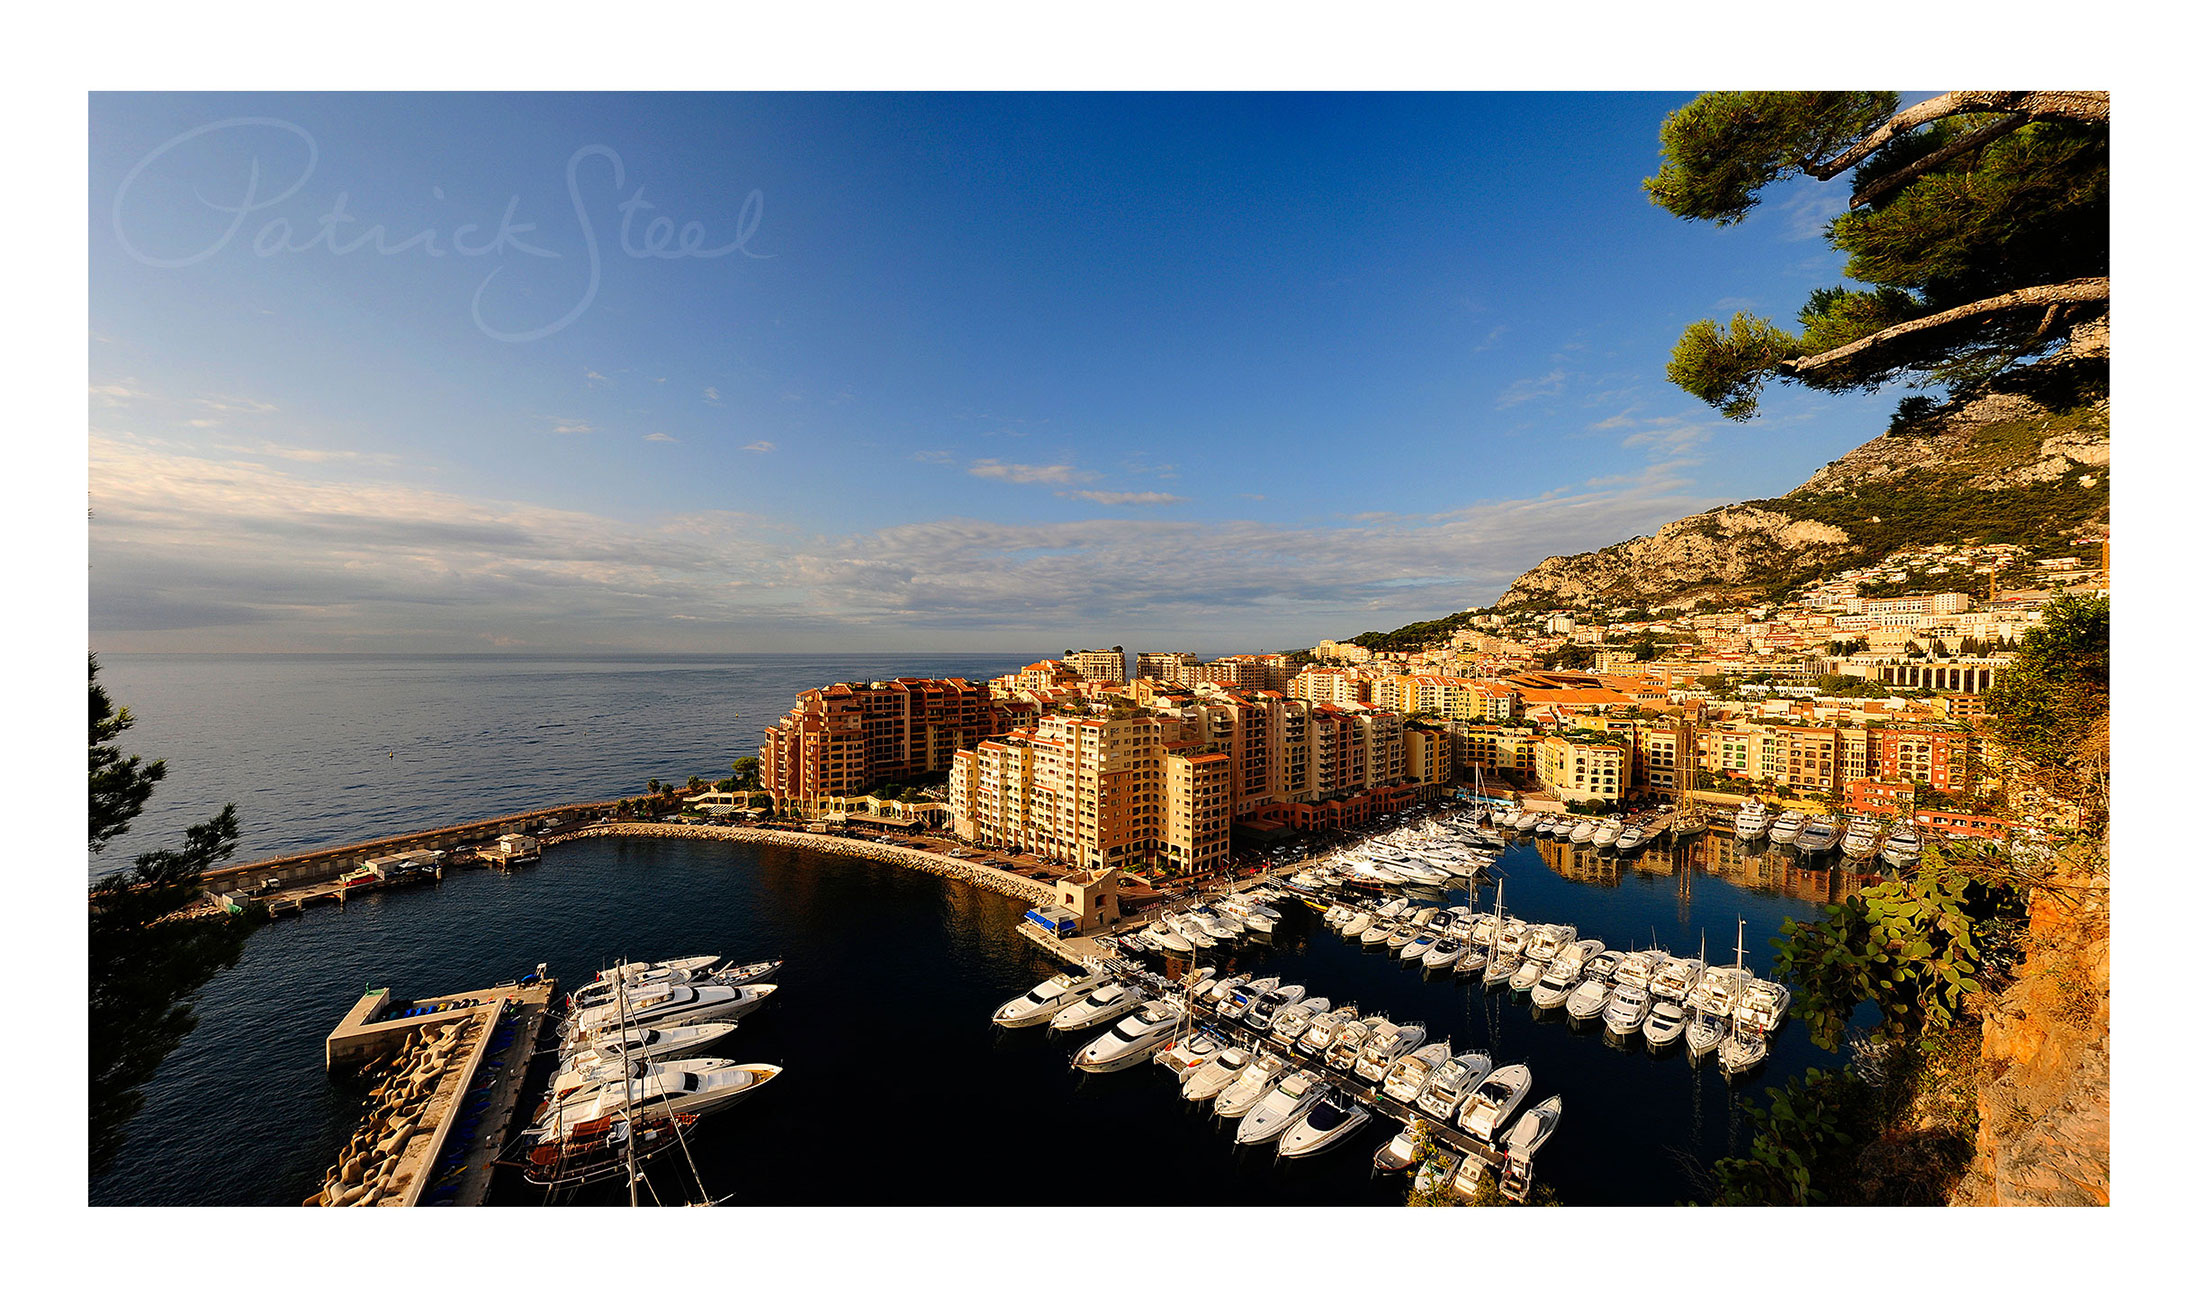 photograph of port fontvieille monaco by landscape photographer patrick steel